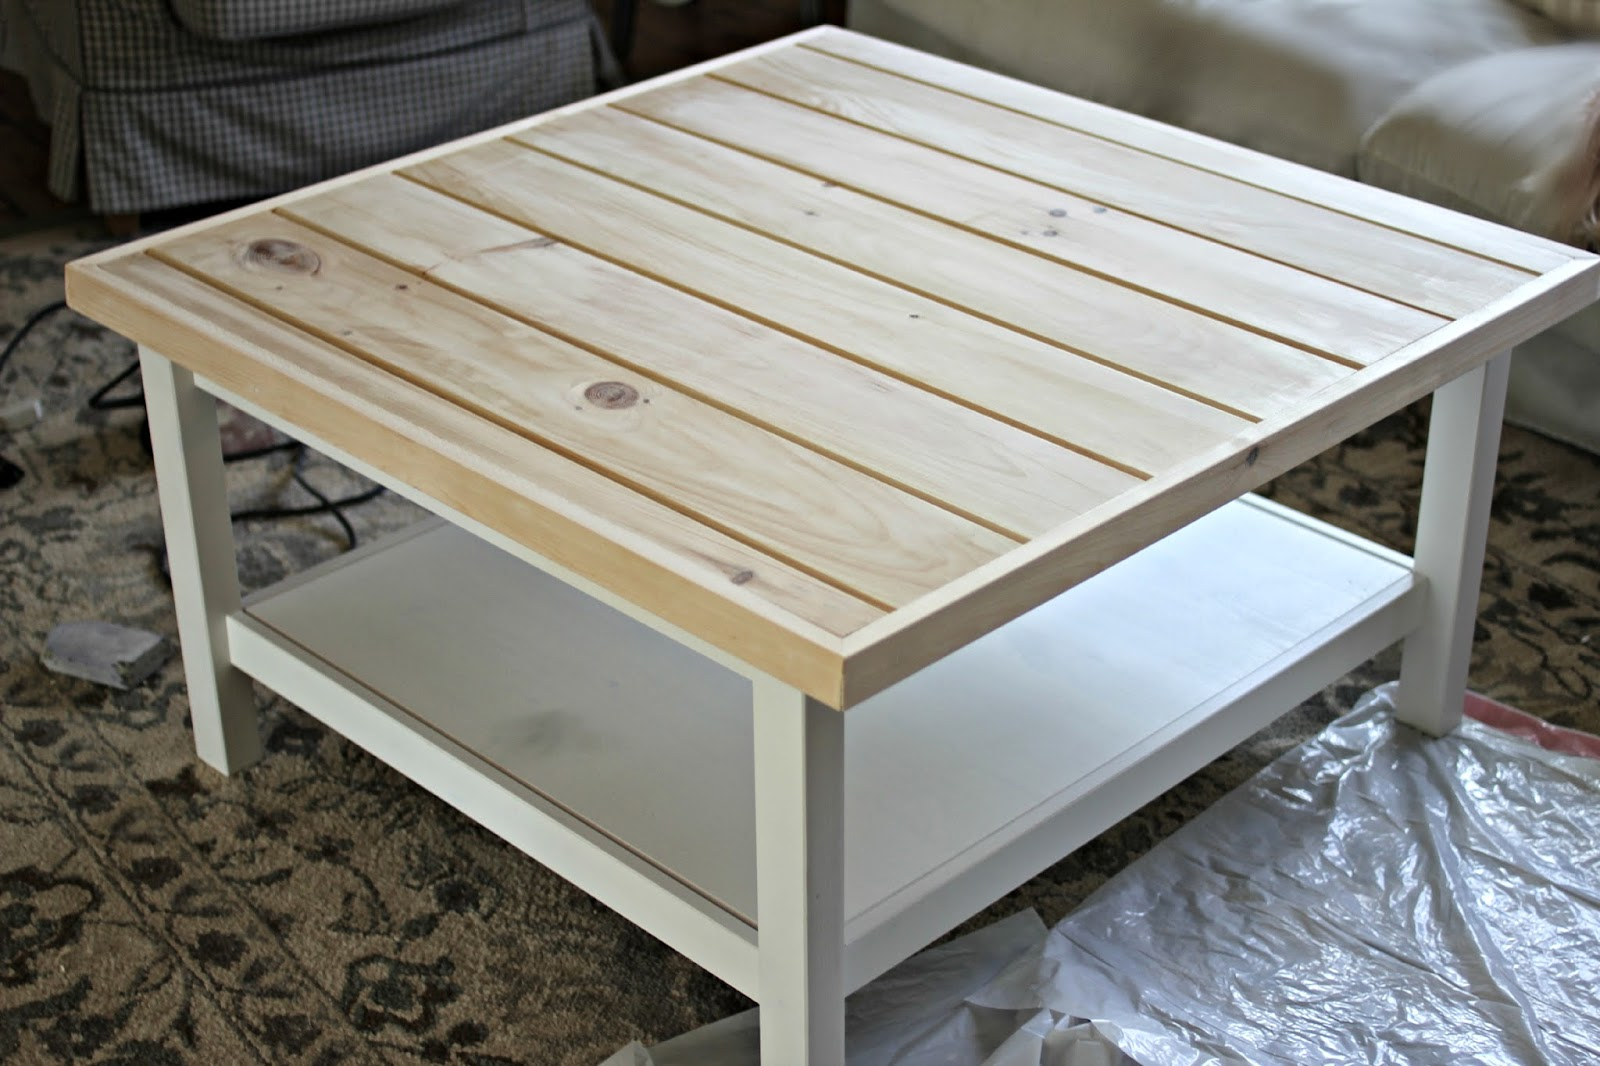 Golden boys and me coffee table ikea hack - Table basse blanc ikea ...